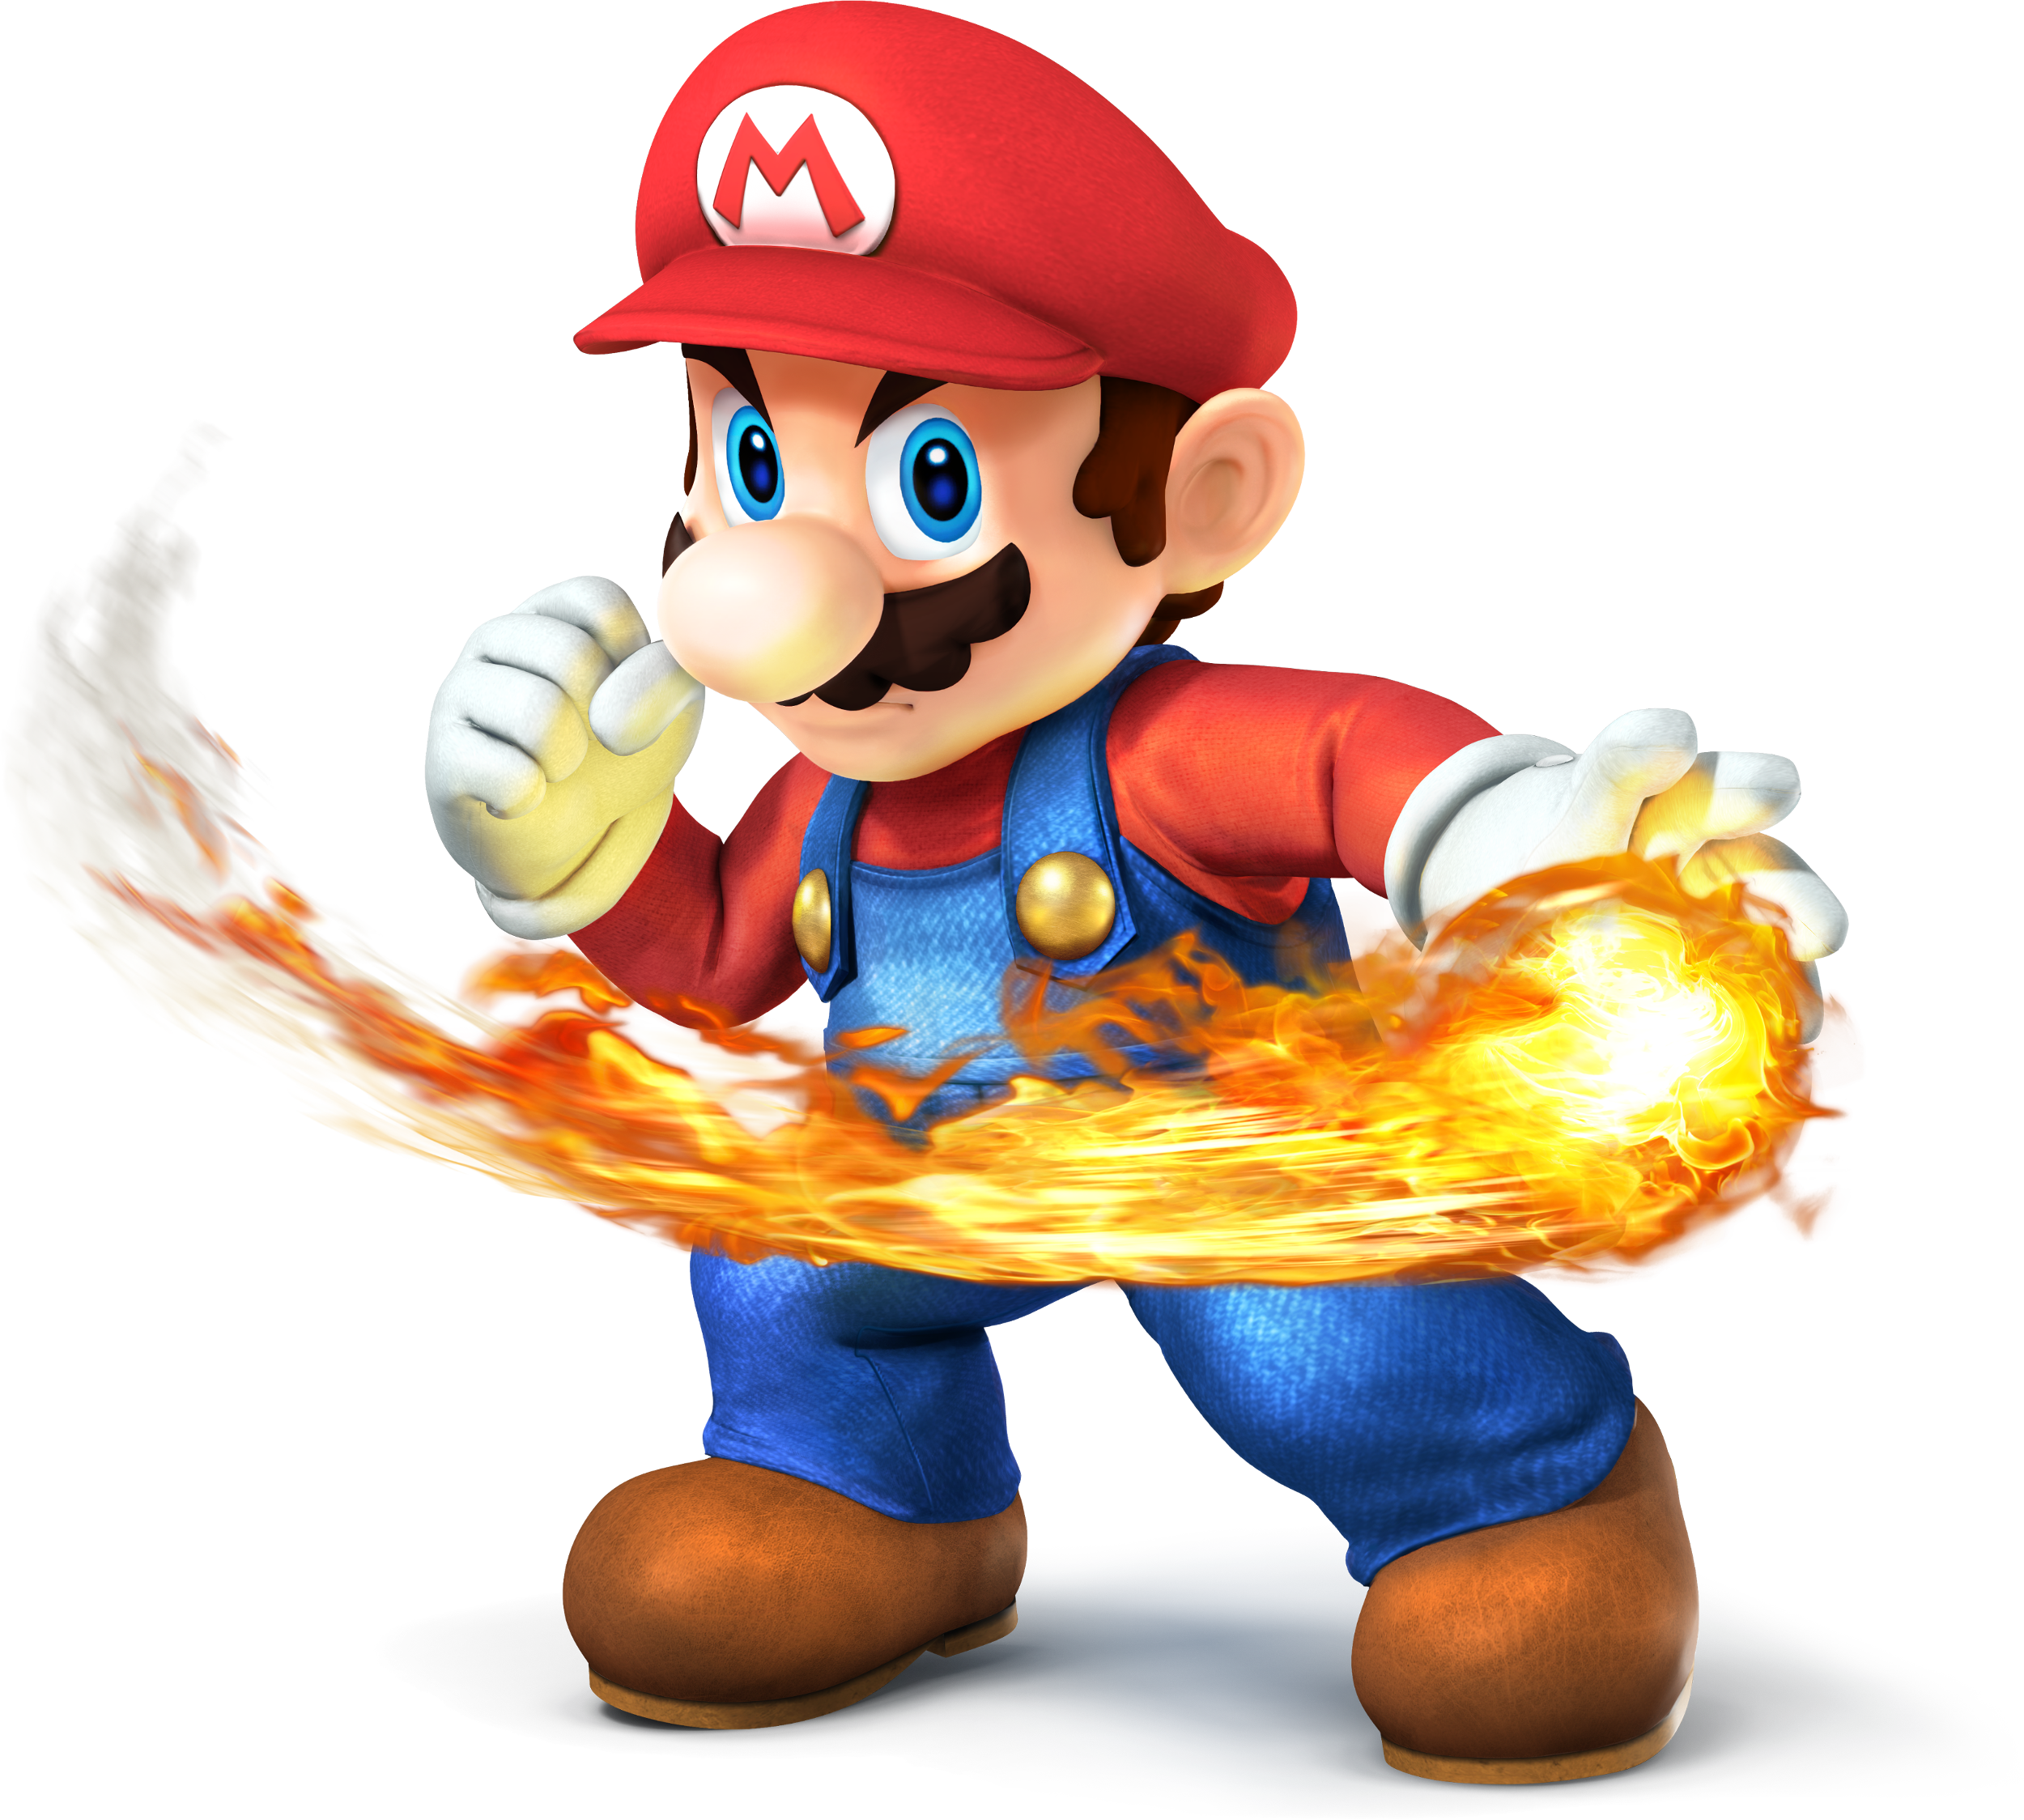 Now you can download Mario PNG in High Resolution